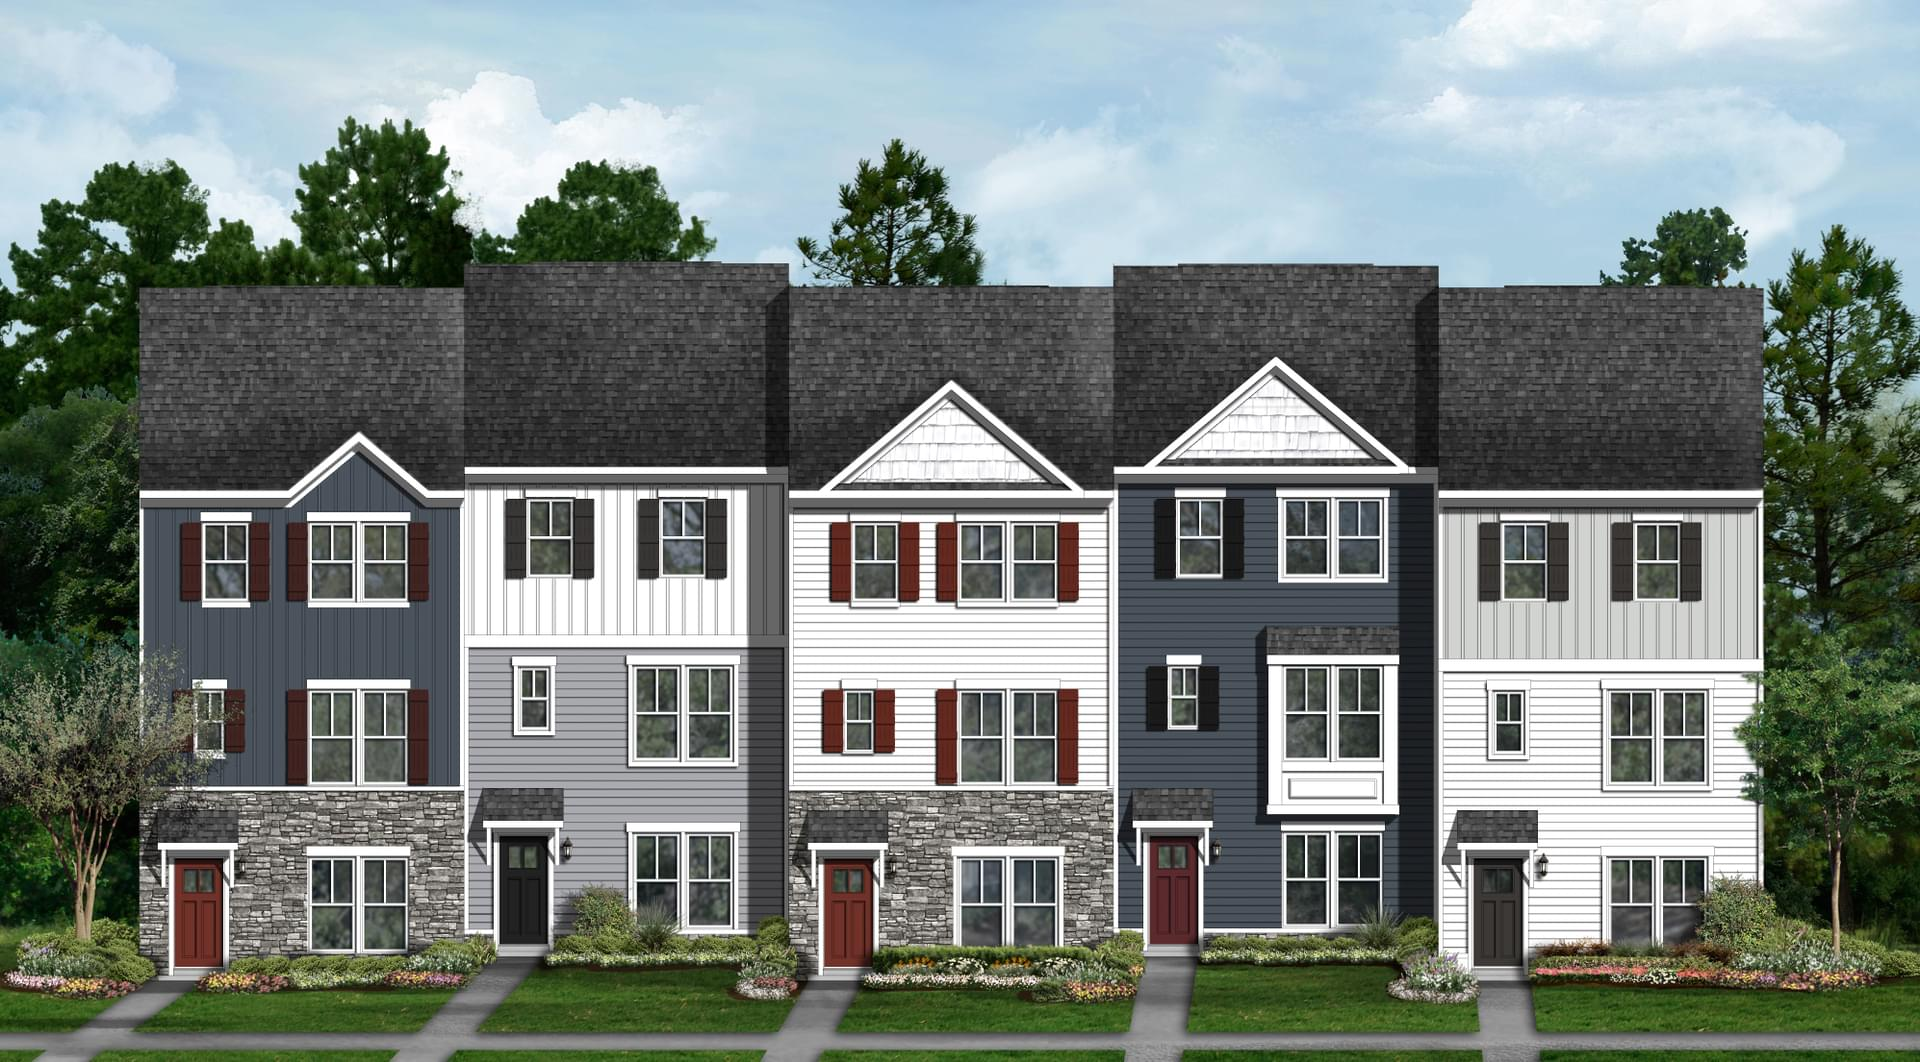 Wye - Rear Load New Home in Owings Mills